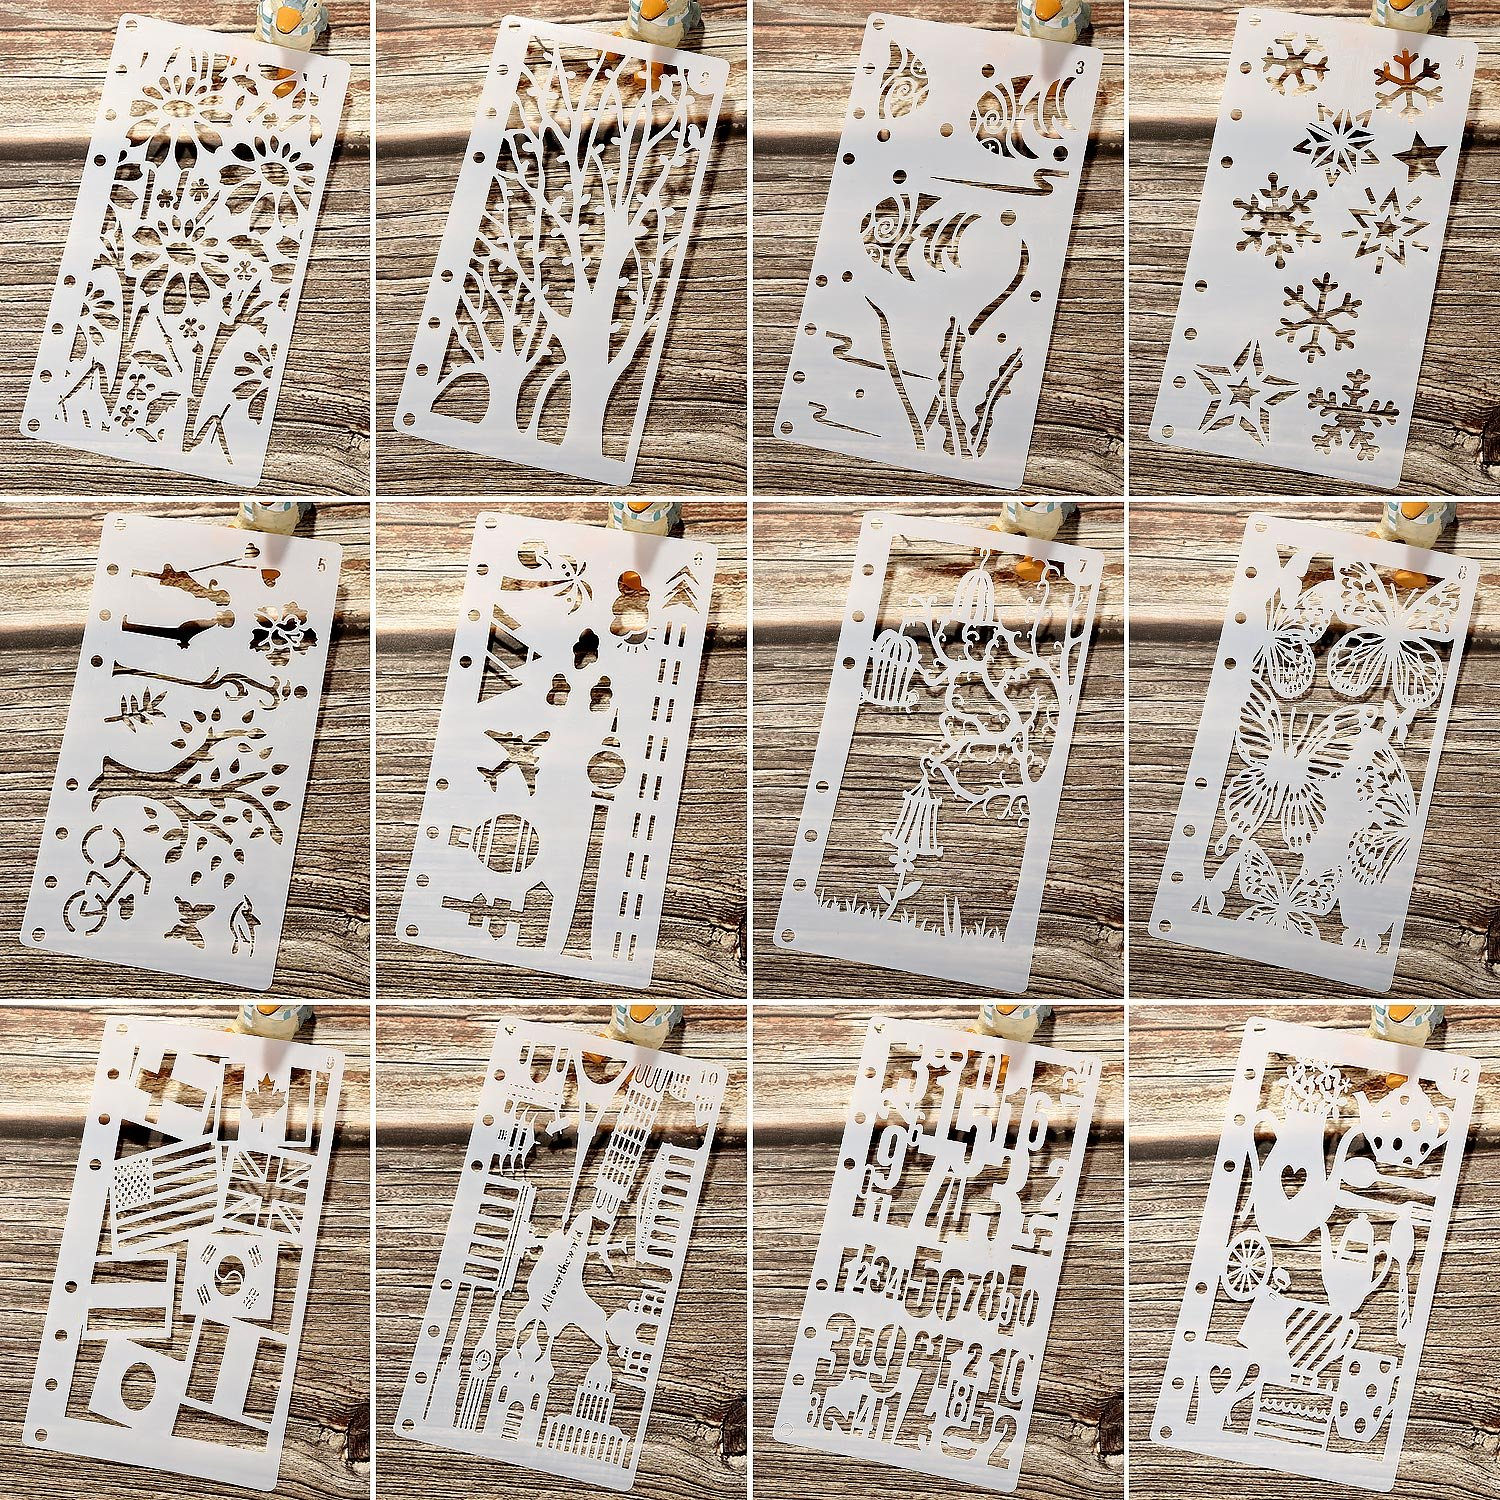 12 Pieces Drawing Loose Leaf Stencils Scale Template Sets Journal Diary Notebook 8-Ring Paper Inserts for Painting Card Craft Projects and Scrapbooking DIY Albums (Style 1)